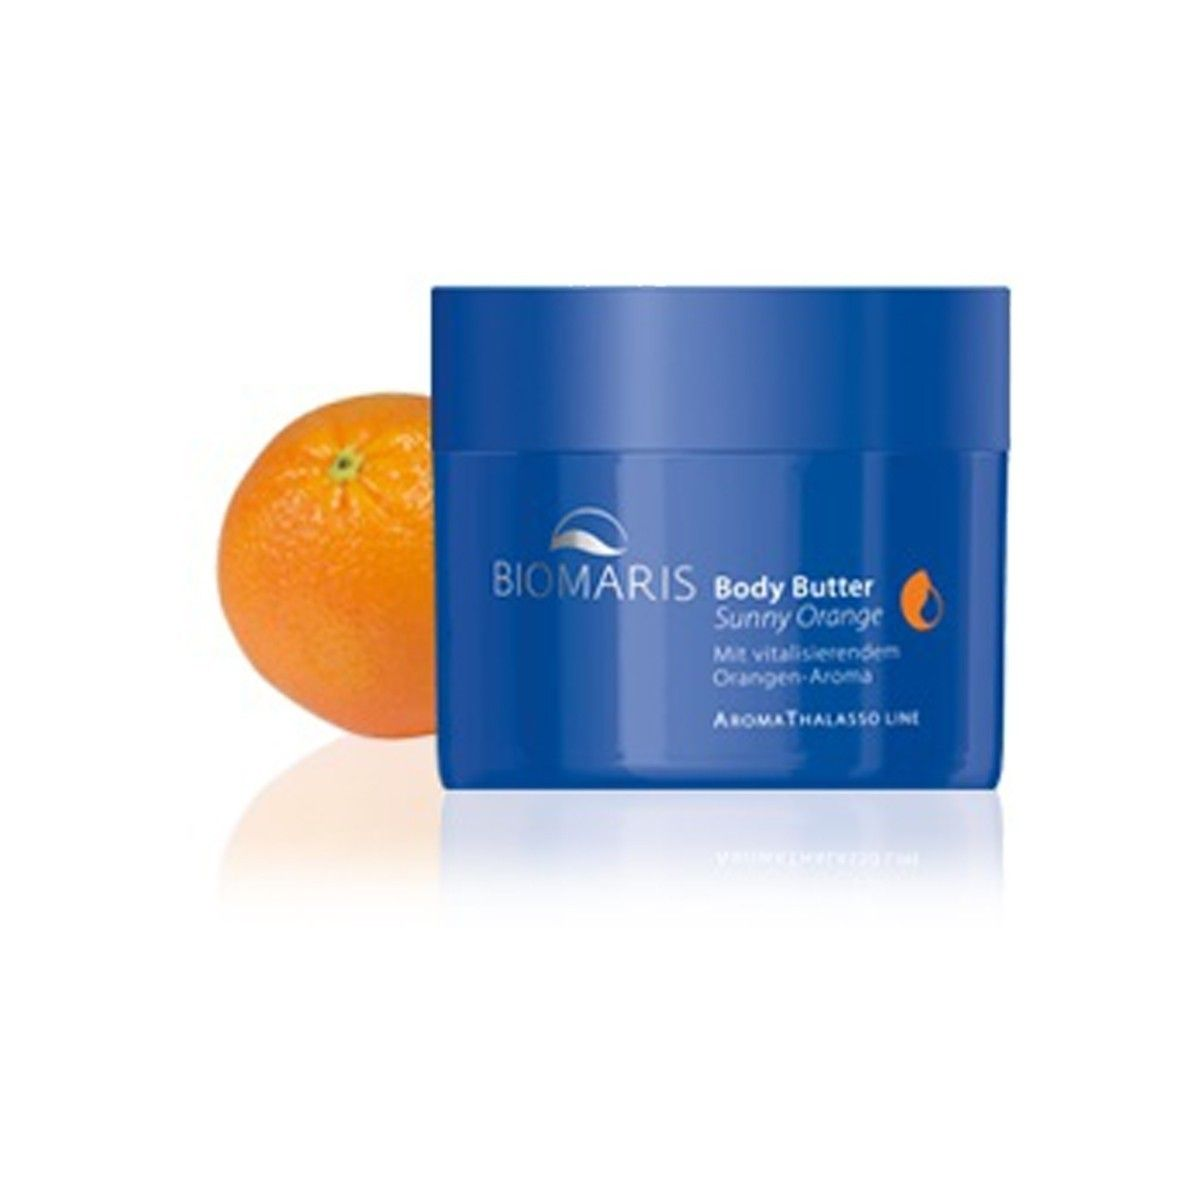 Afbeelding van Biomaris Body Butter Sunny Orange Aroma Thalasso Line Beauty